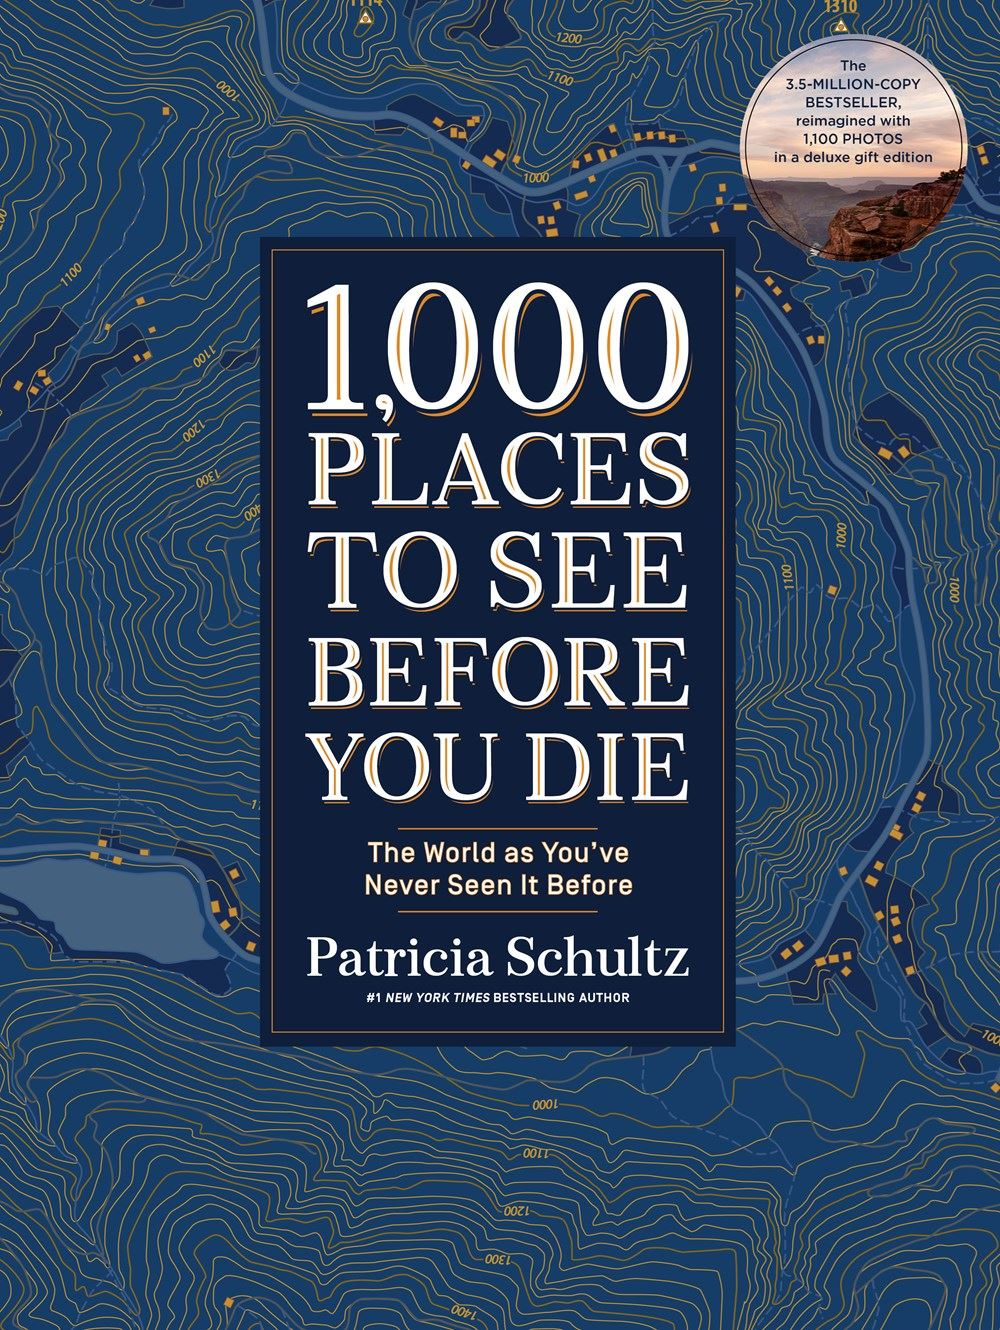 1000 Places To See Before You Die Book - (Deluxe Ed)